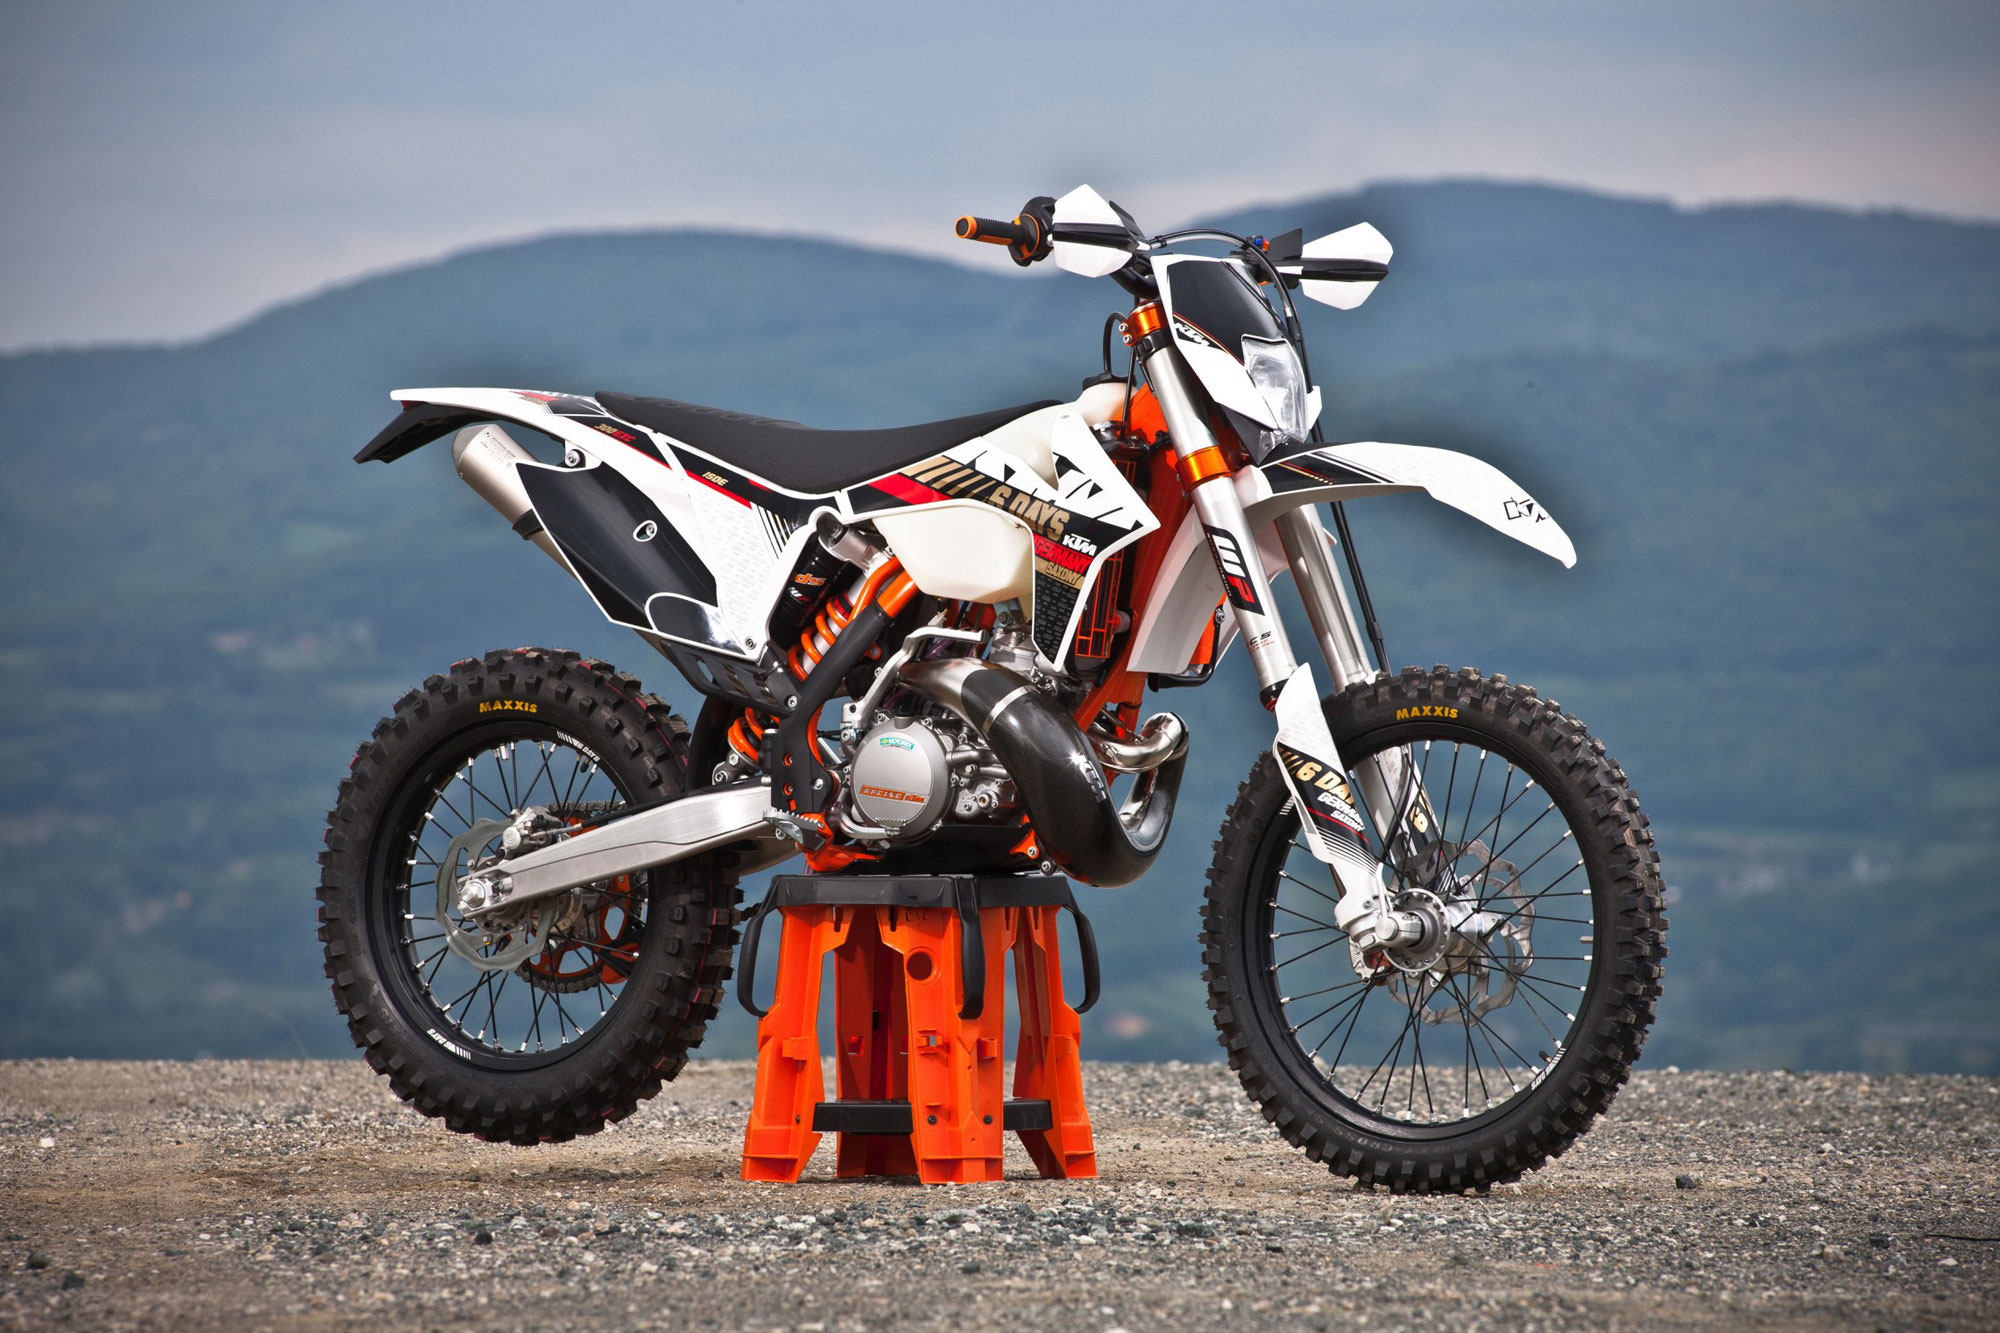 KTM 300 MXC 2002 images #85473